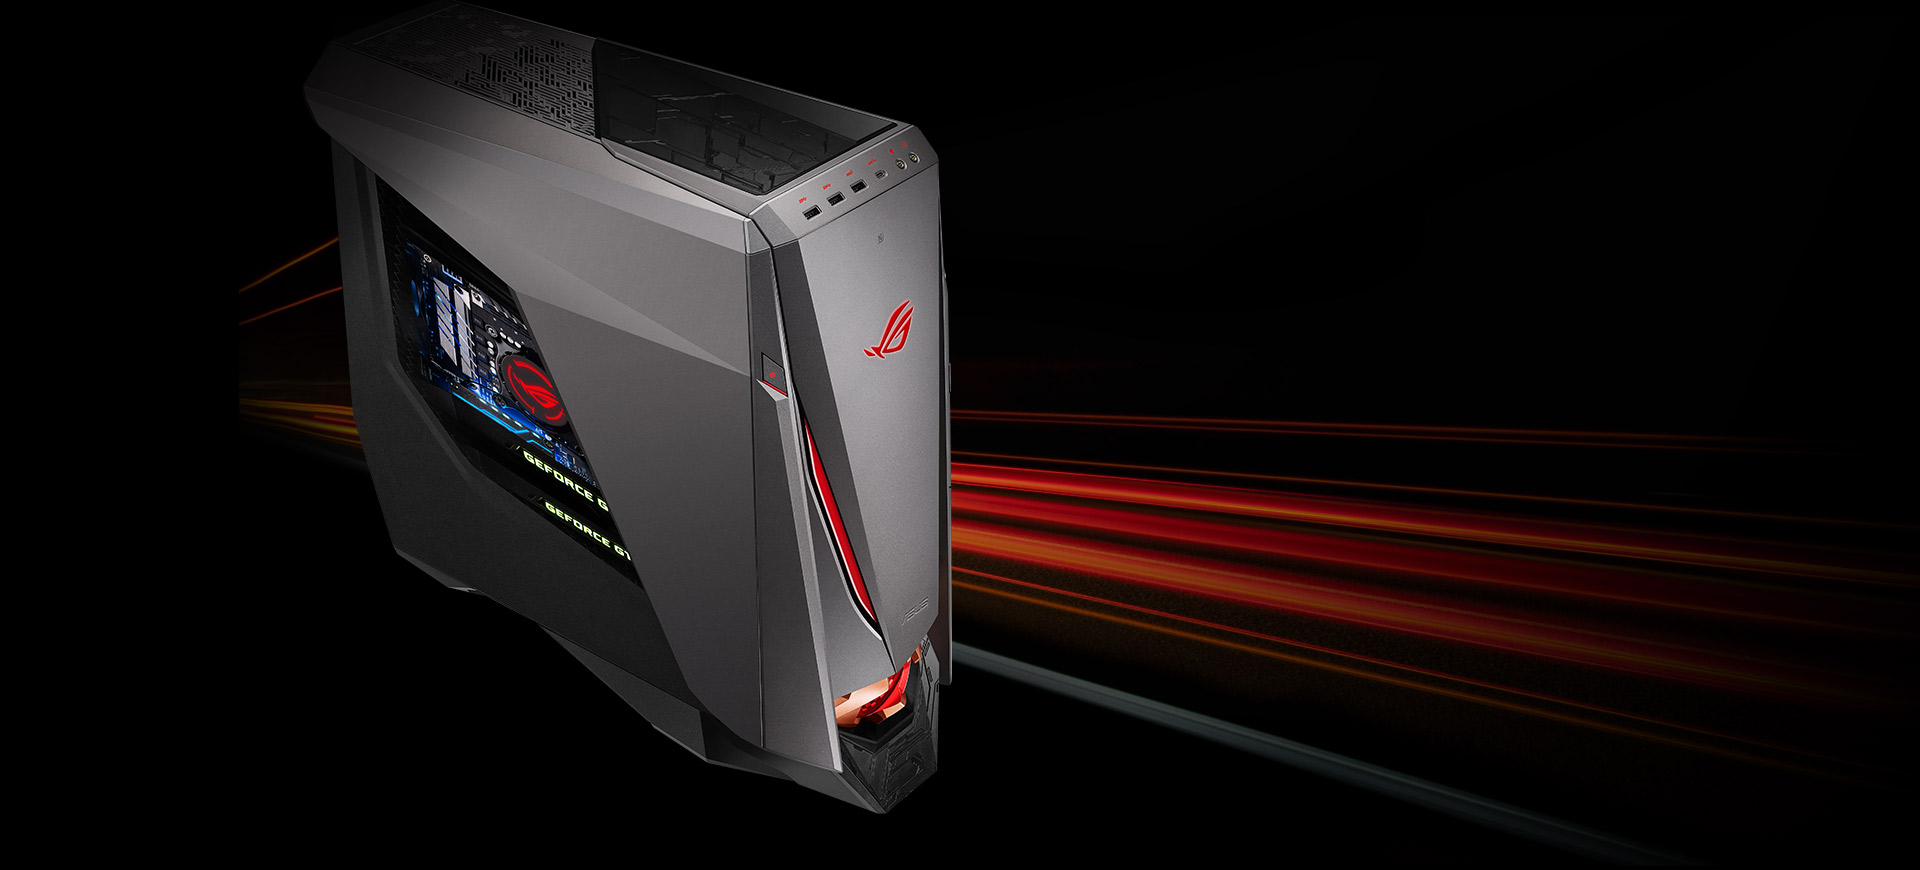 Rog Gt51ca Tower Pcs Asus India